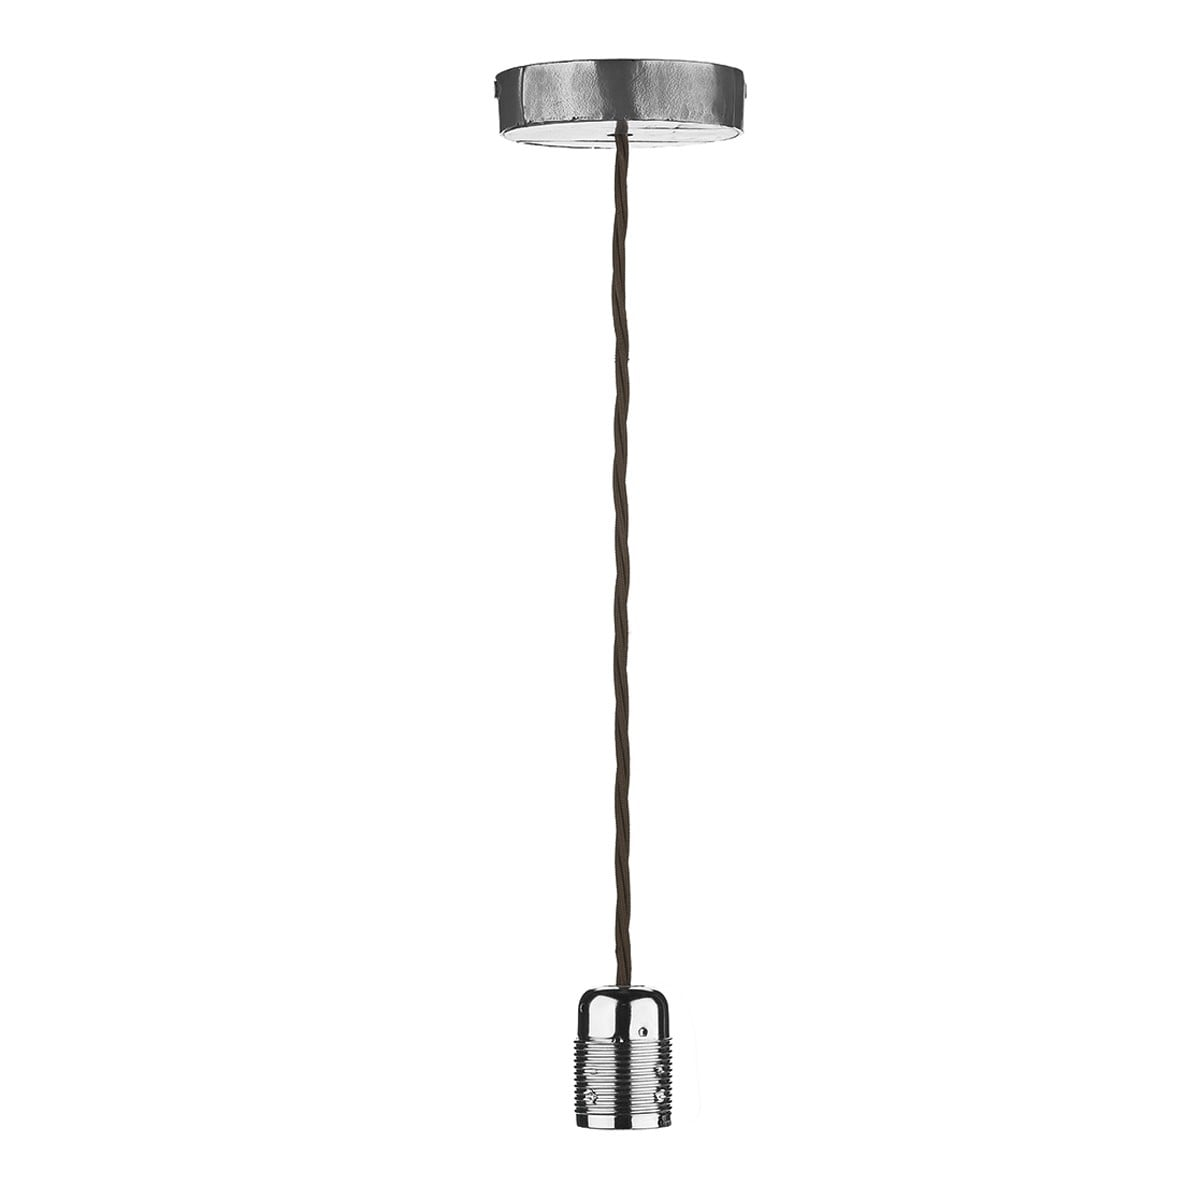 David Hunt Lighting HUC0139 Huckleberry 1 Light Pendant in Lead finish (Fitting only)